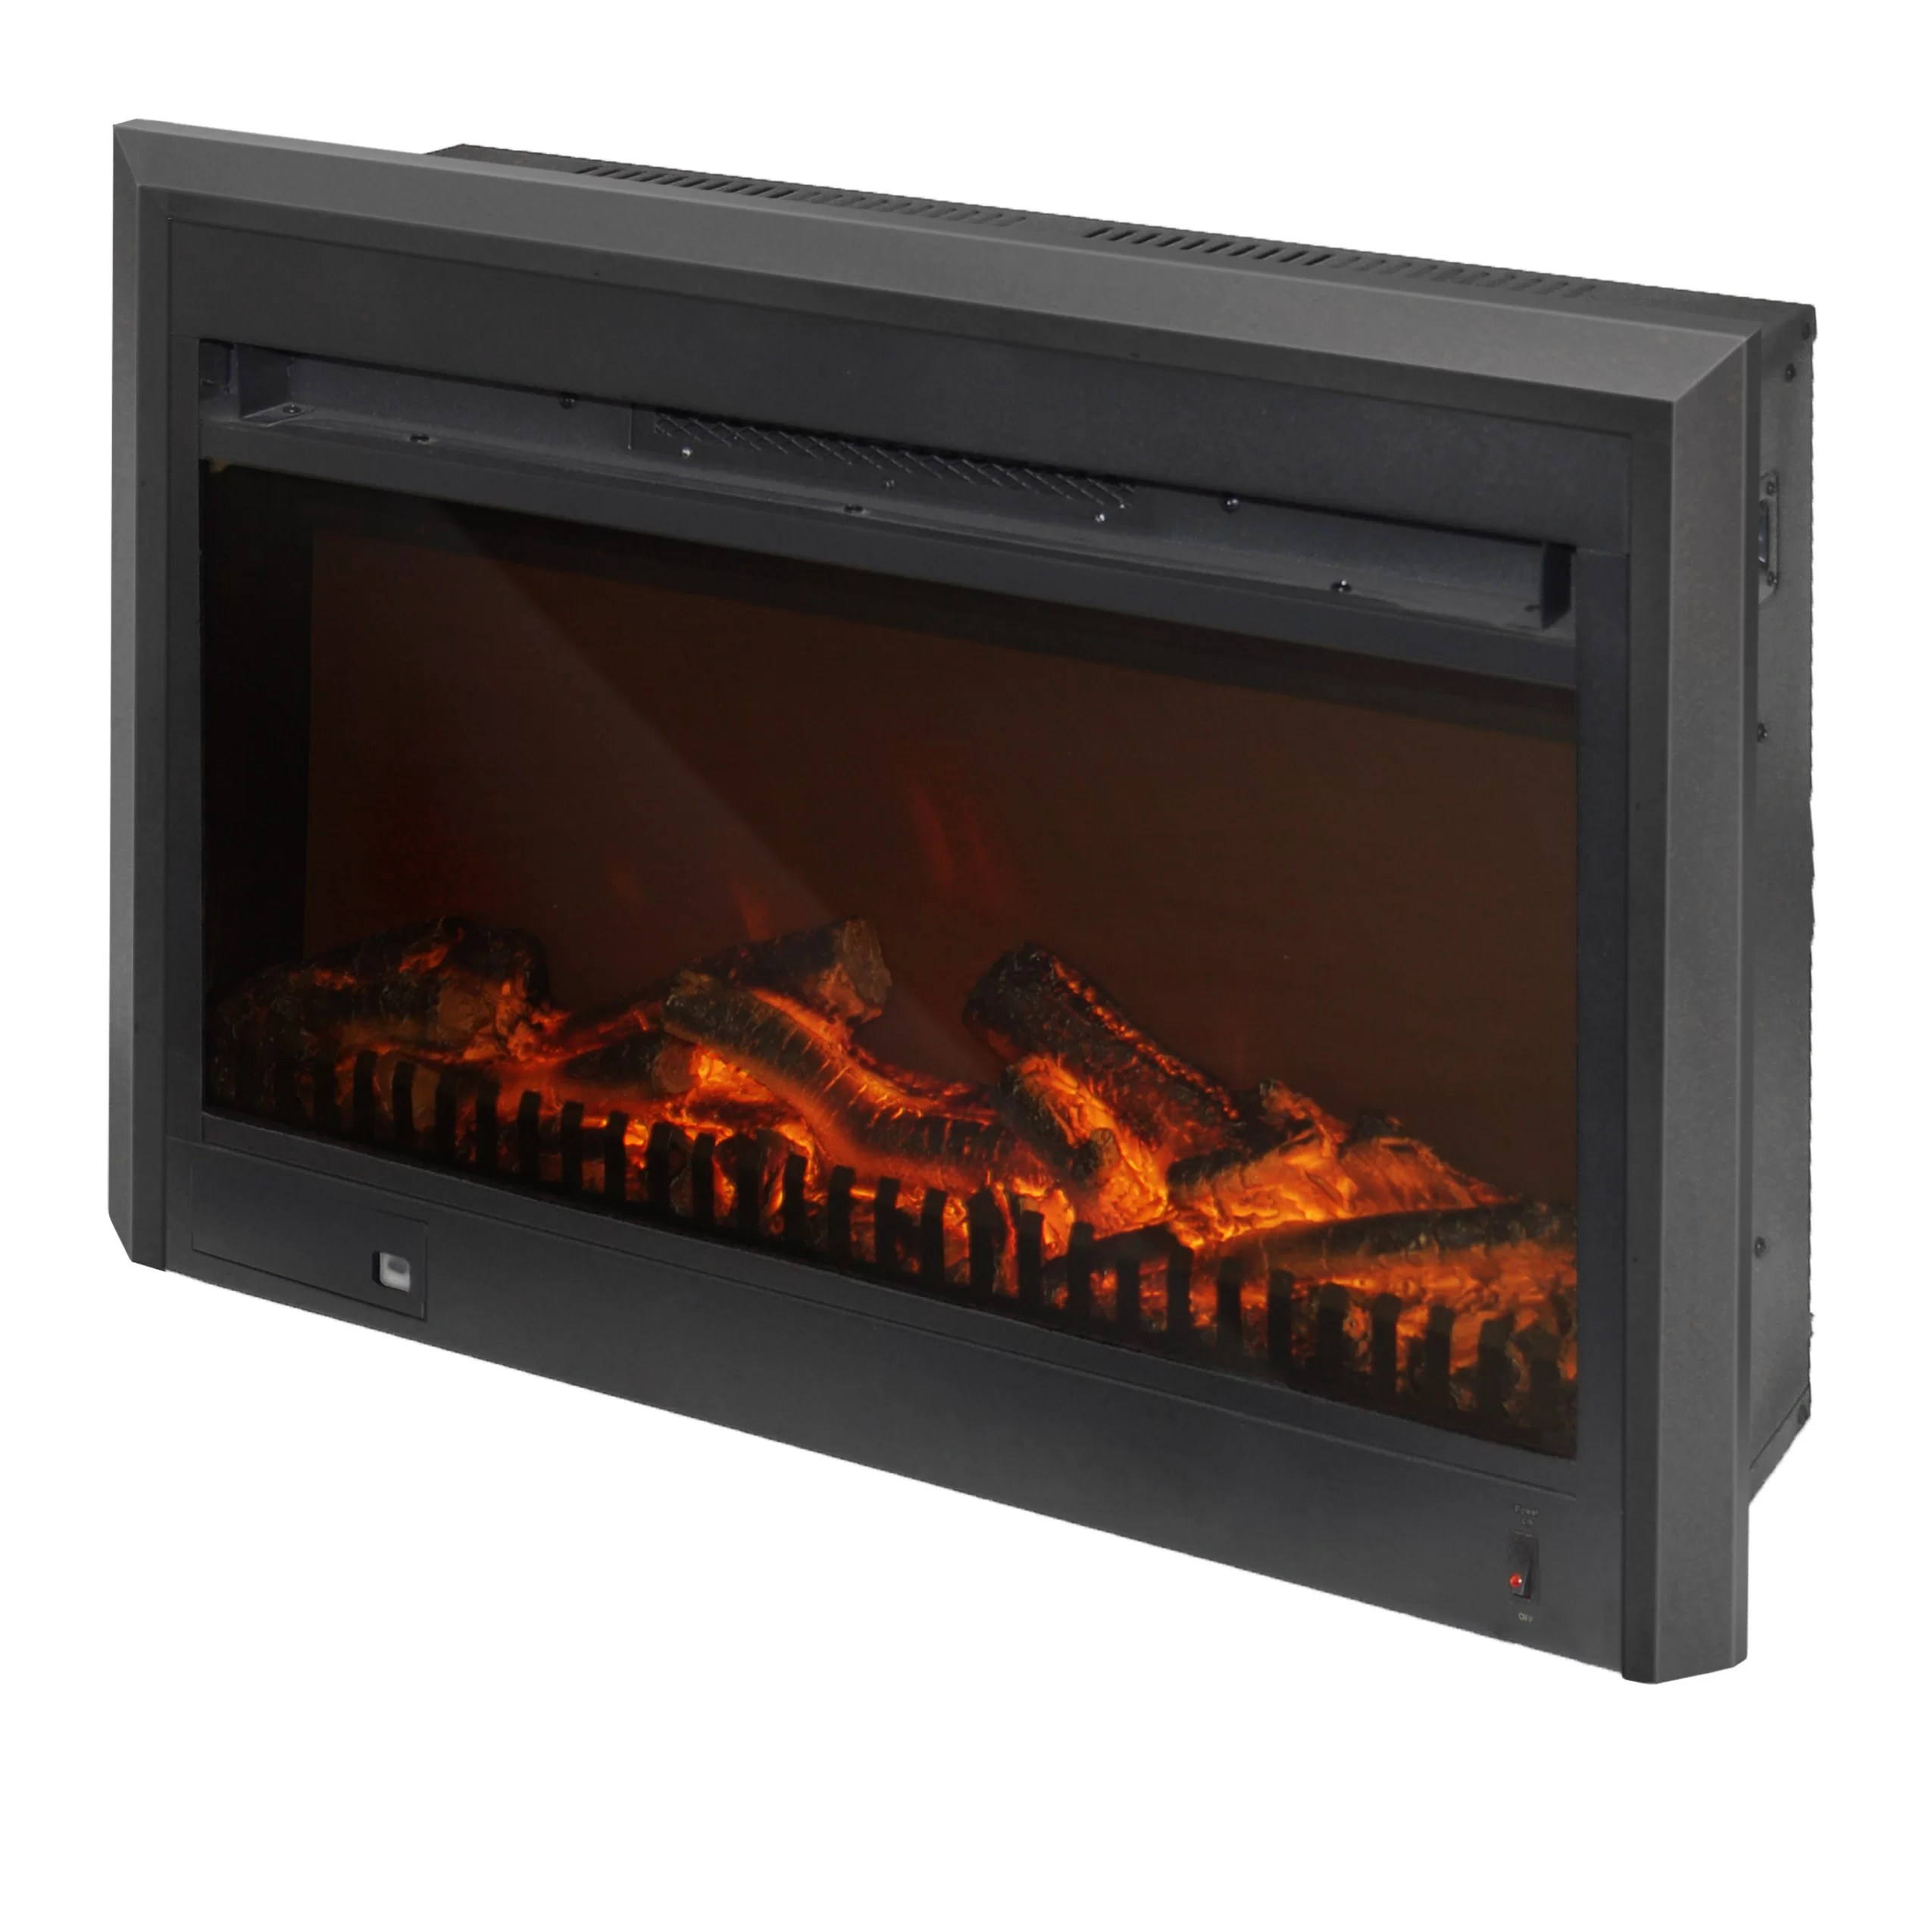 Corliving Electric Fireplace Insert Amp Reviews